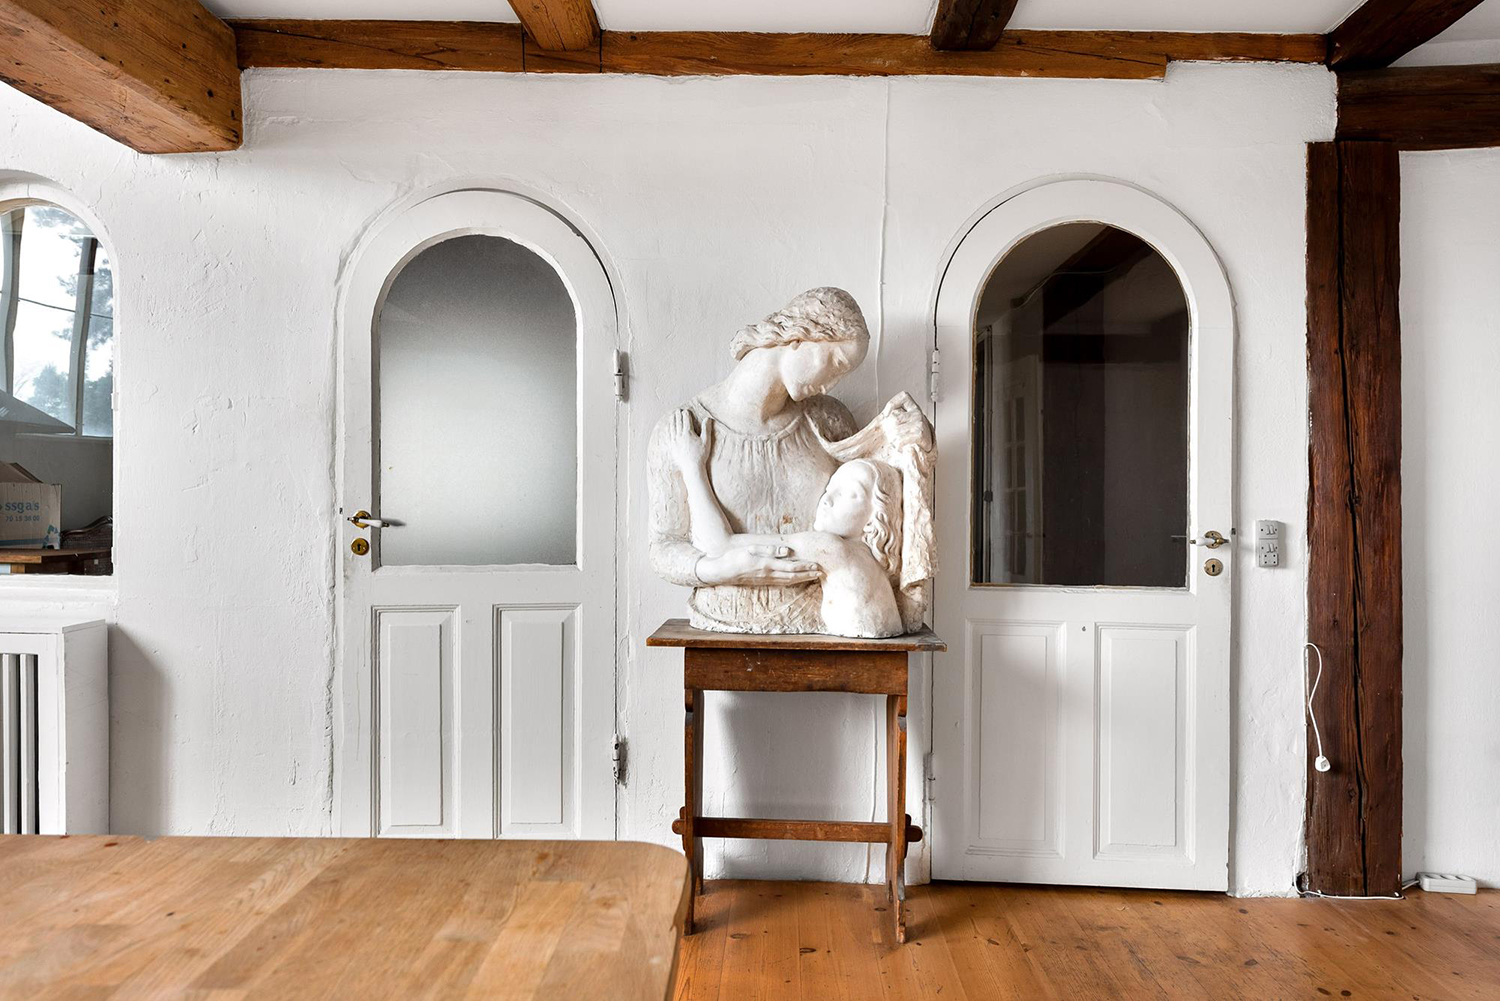 Arched doors are from the Old Eastern gaworks and continue the monastic feel